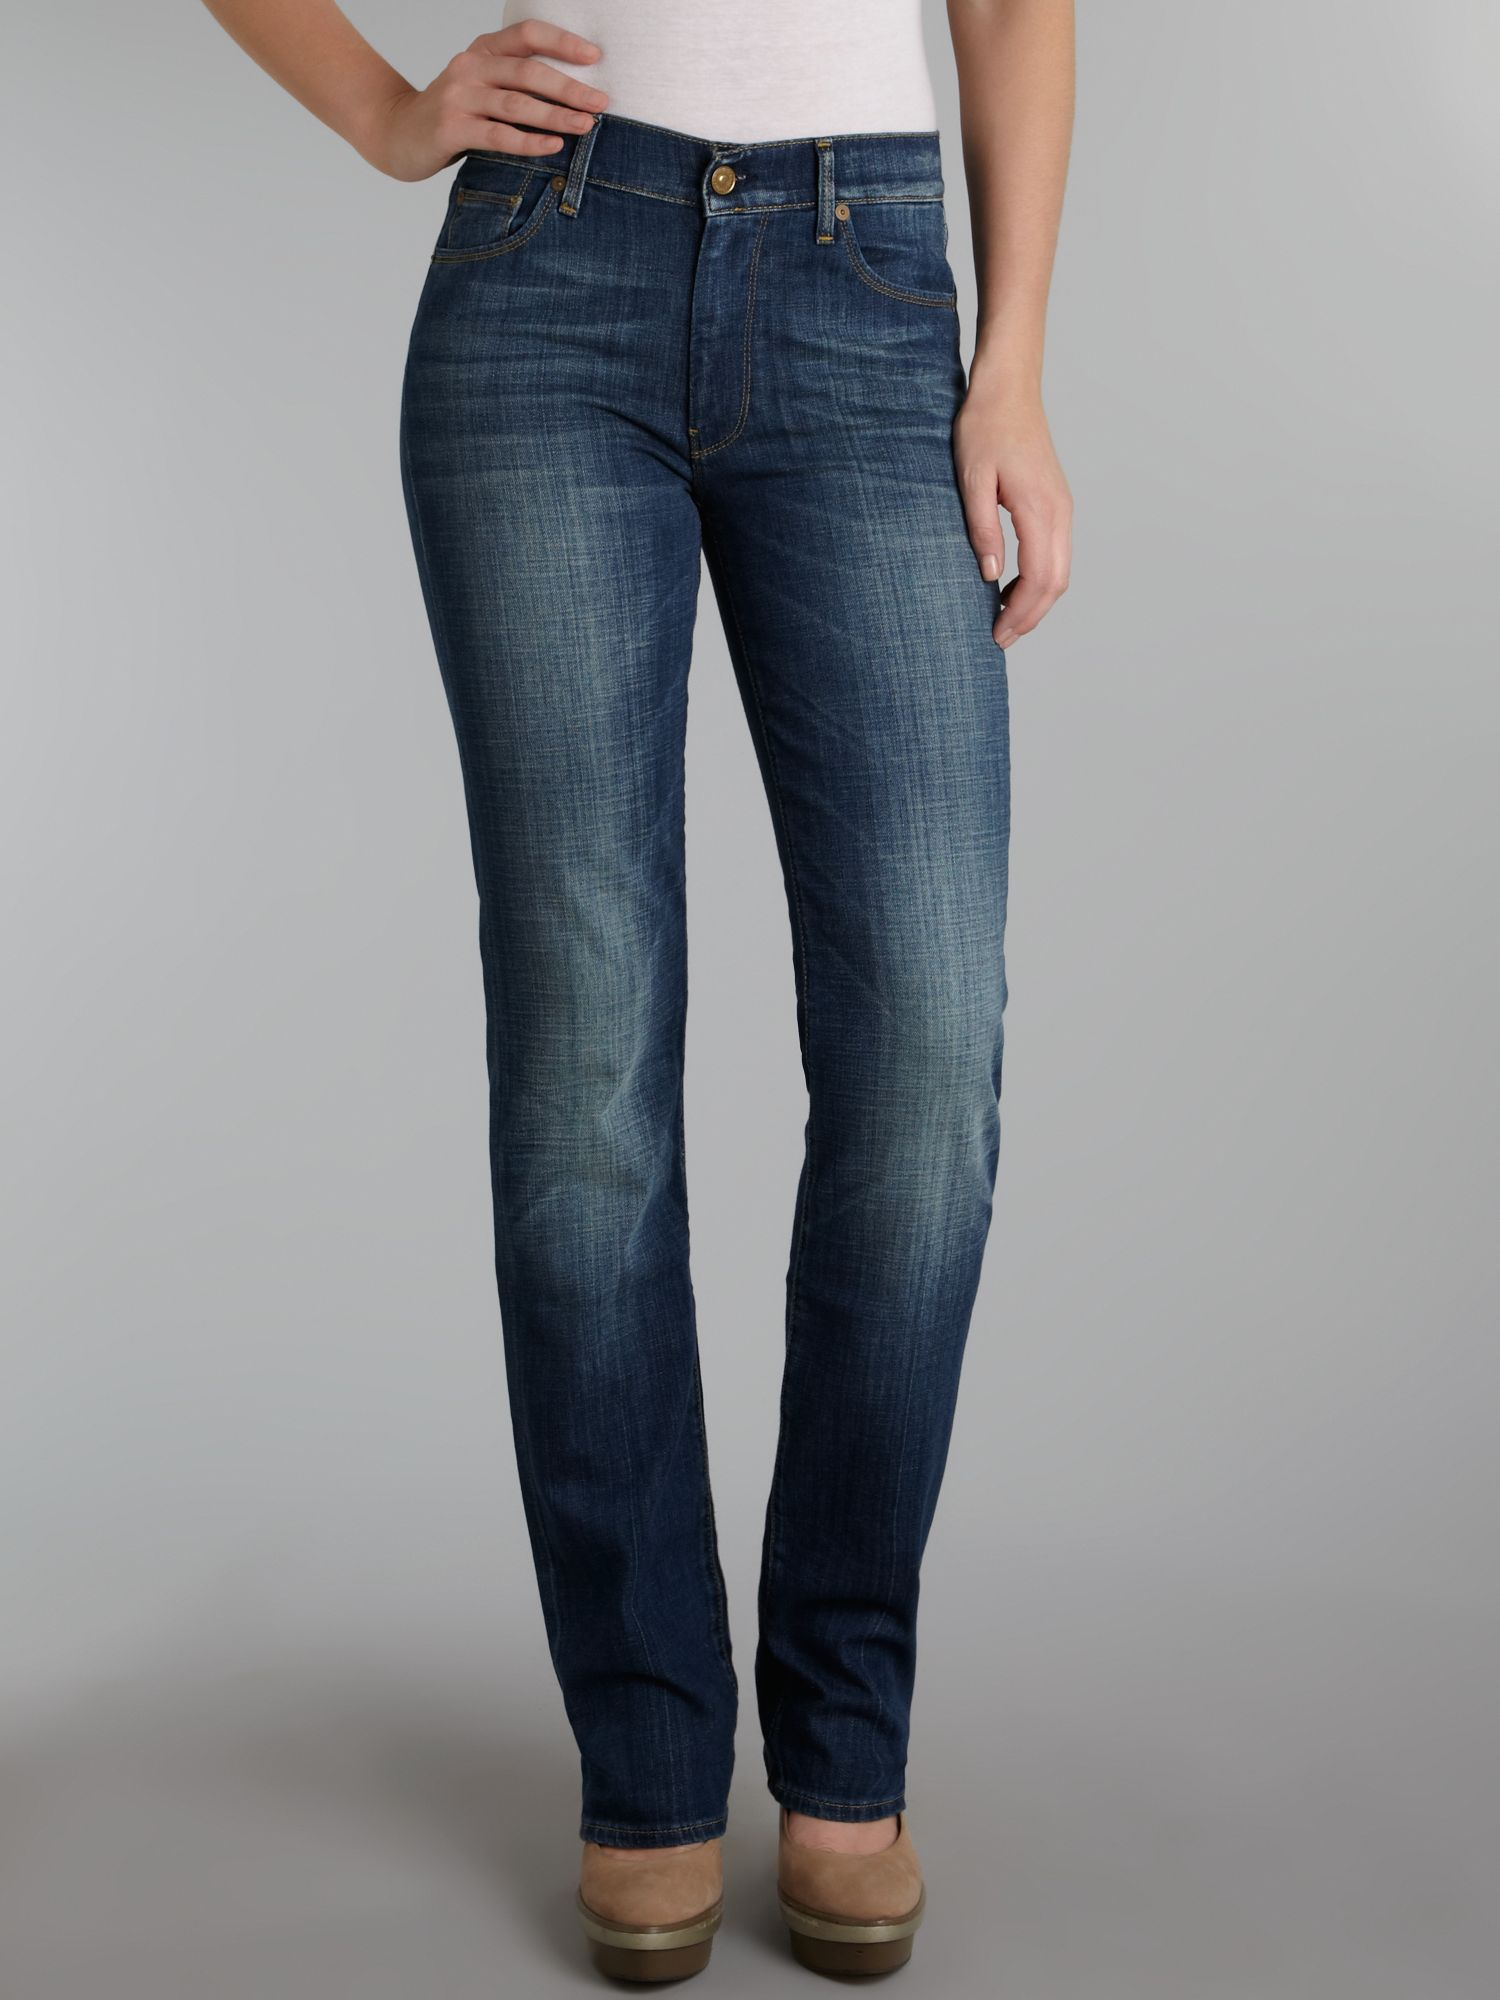 Straight leg jeans in Earthsoul